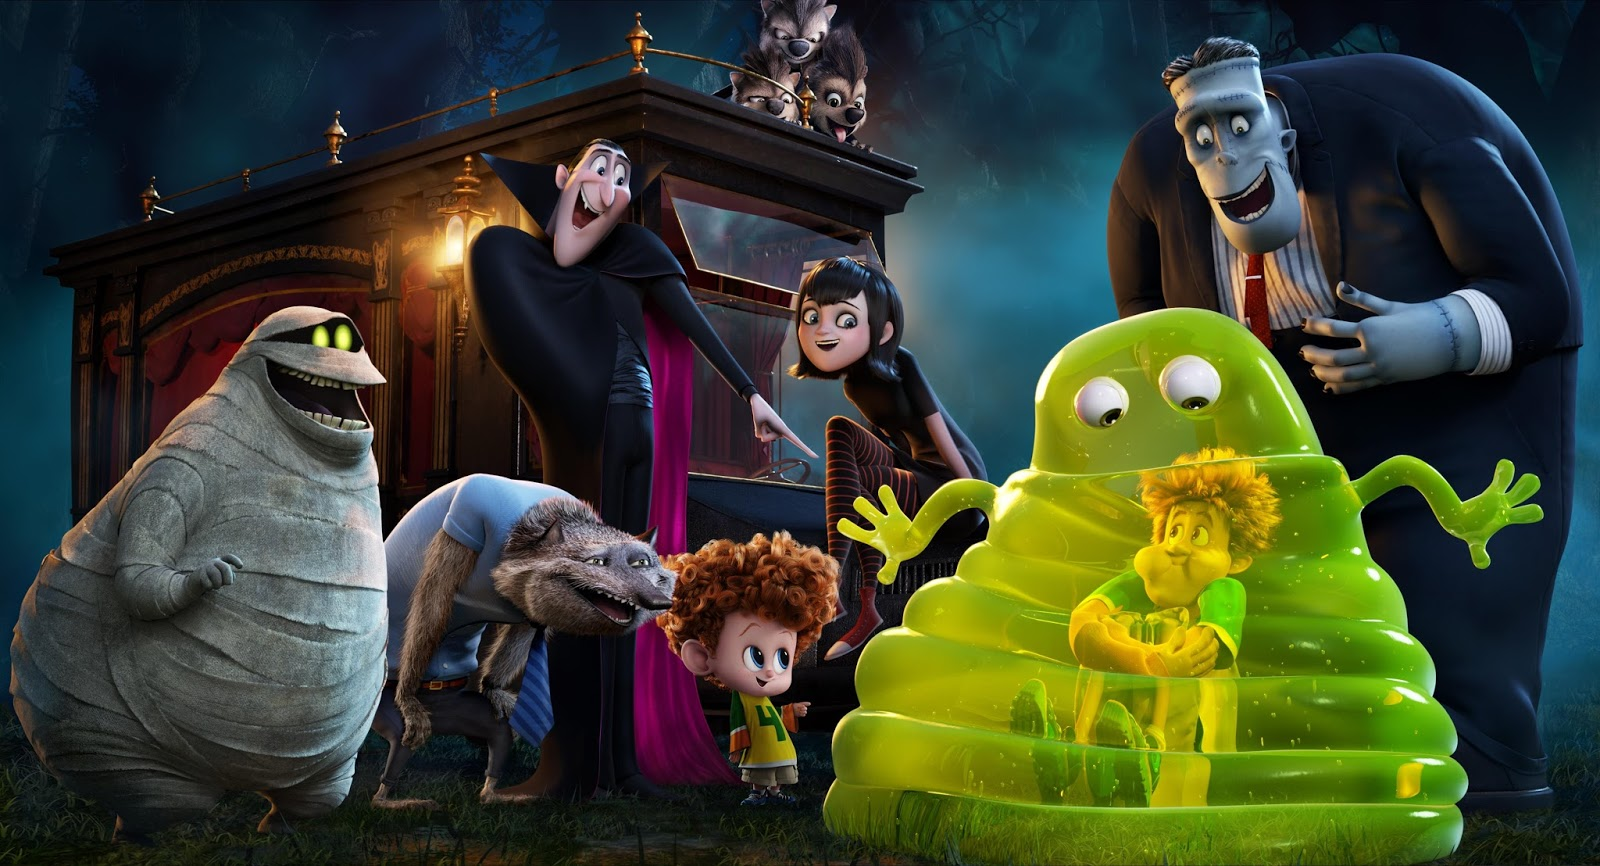 3D Animated Movie Wallpaper 2016 Hotel Transylvania 2 Komedi Family